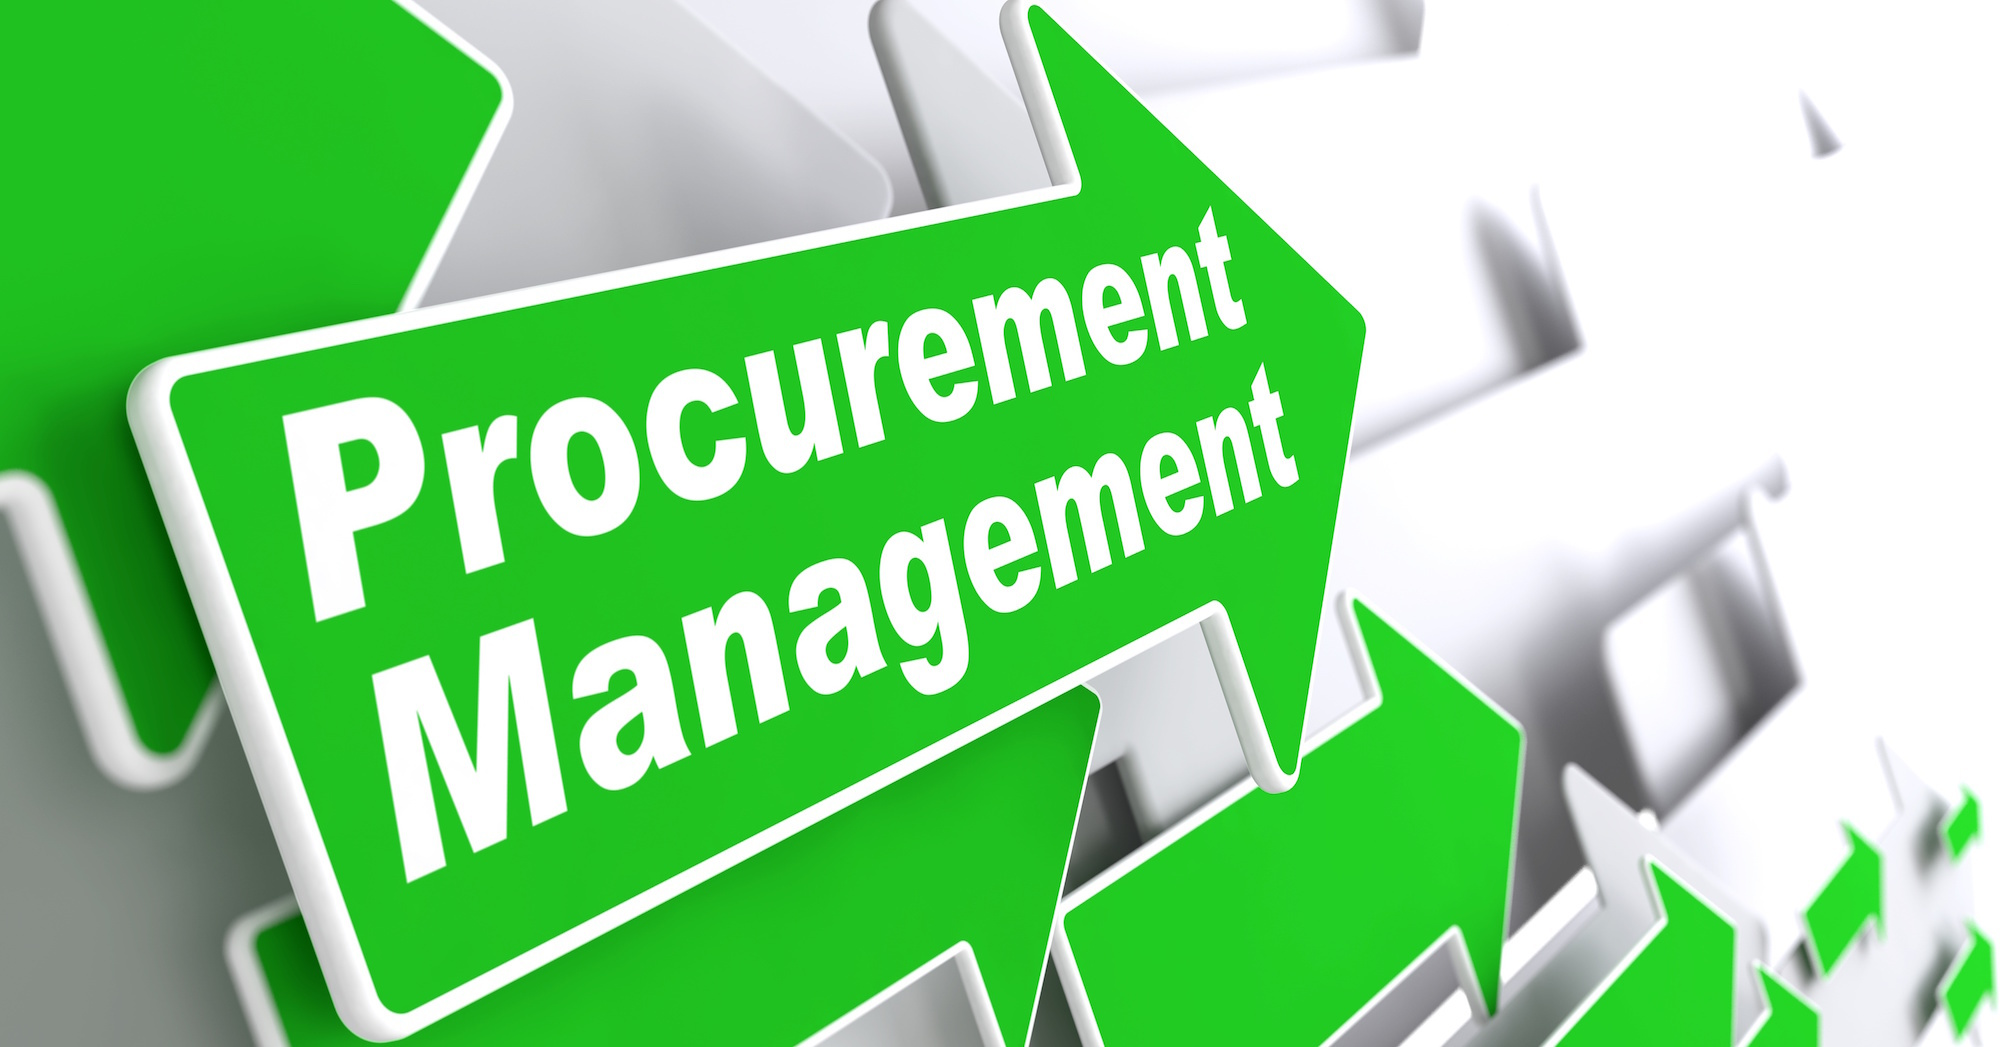 Procurement Management